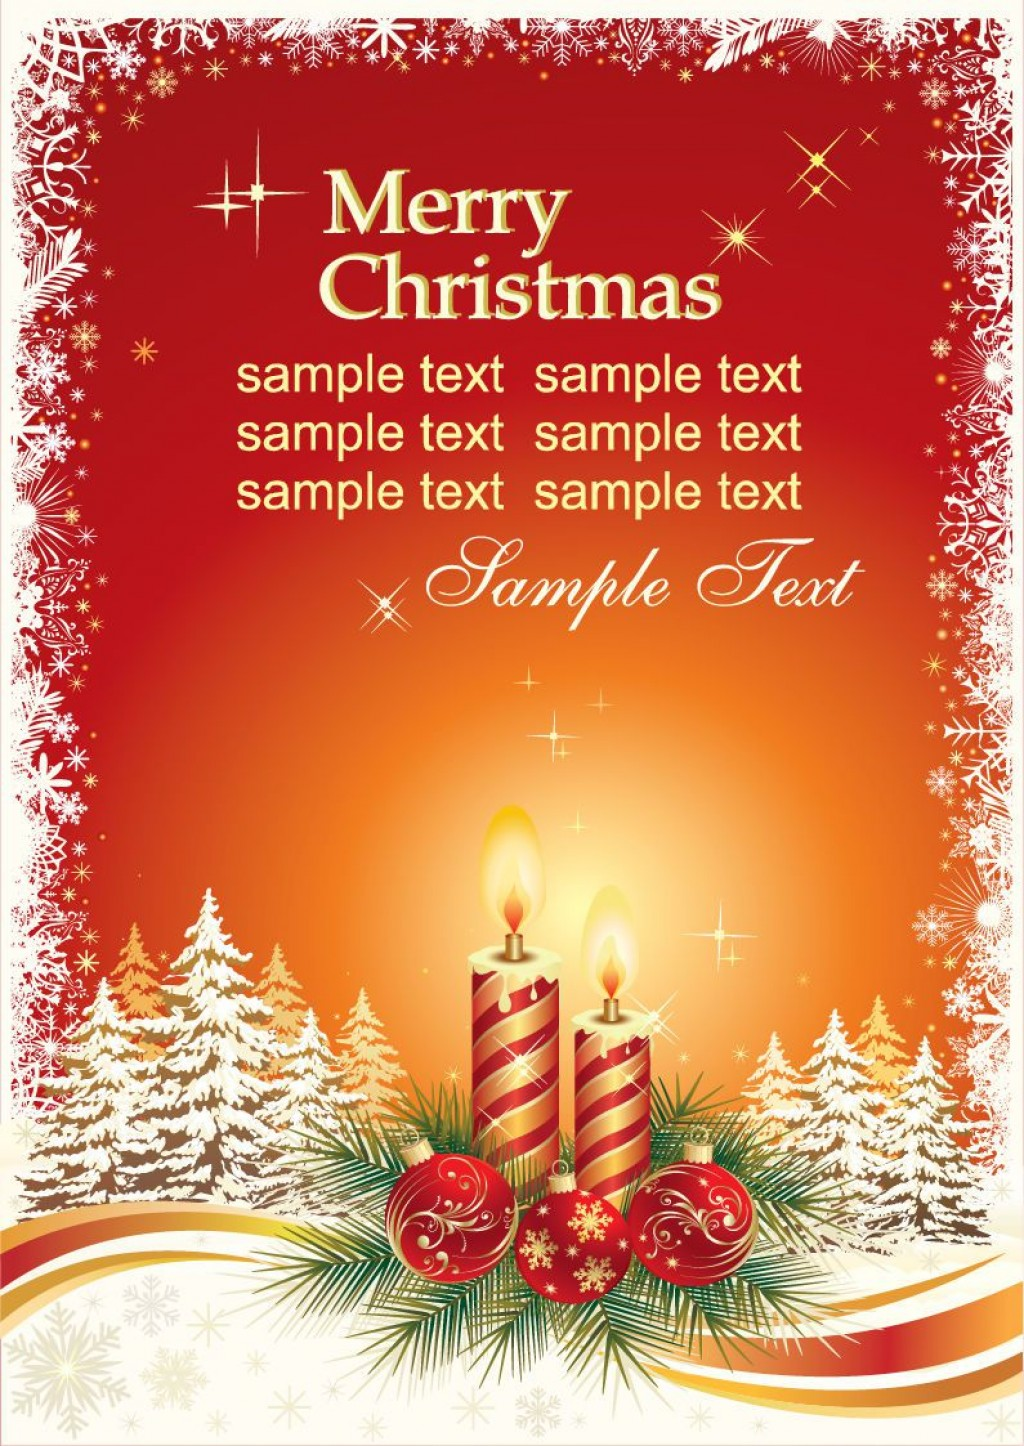 006 Staggering Christma Card Template Free Download Highest Clarity  Downloads Photoshop Photo EditableLarge